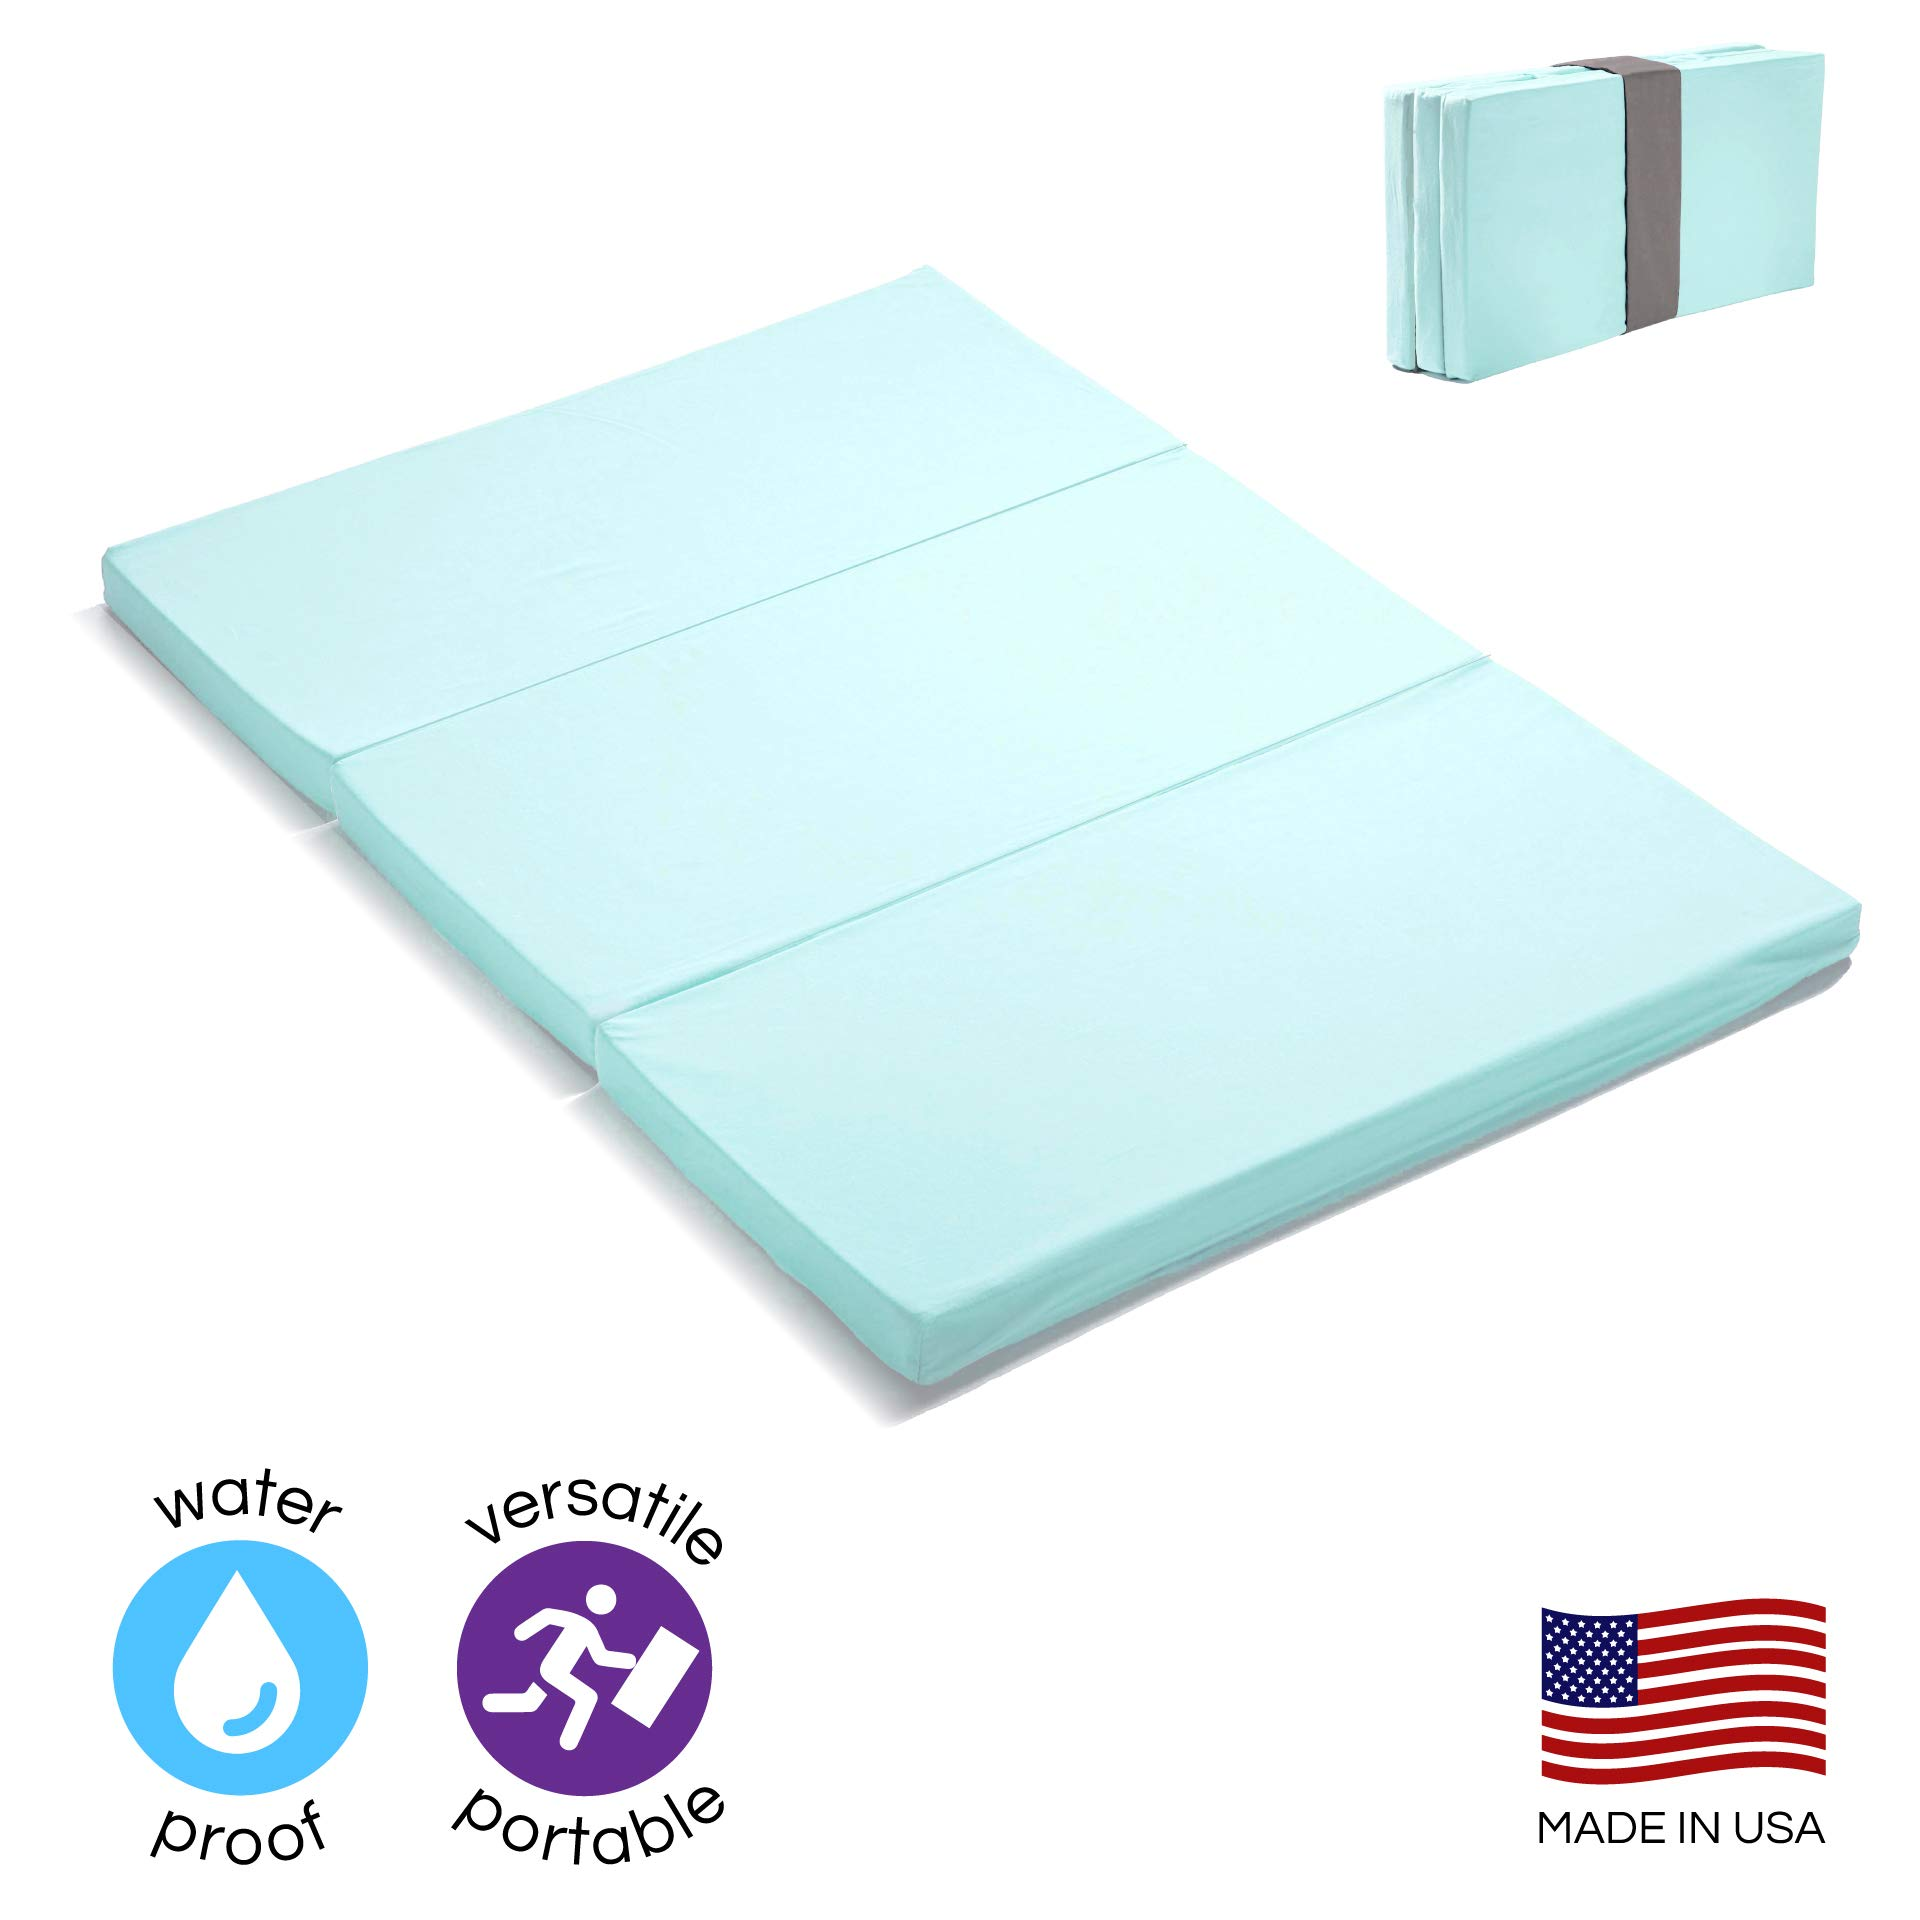 MamaDoo Kids Waterproof Smart Pack n Play Mattress Topper | Foldable Portable Pack and Play Mat | Includes Travel & Storage Bag | Aqua